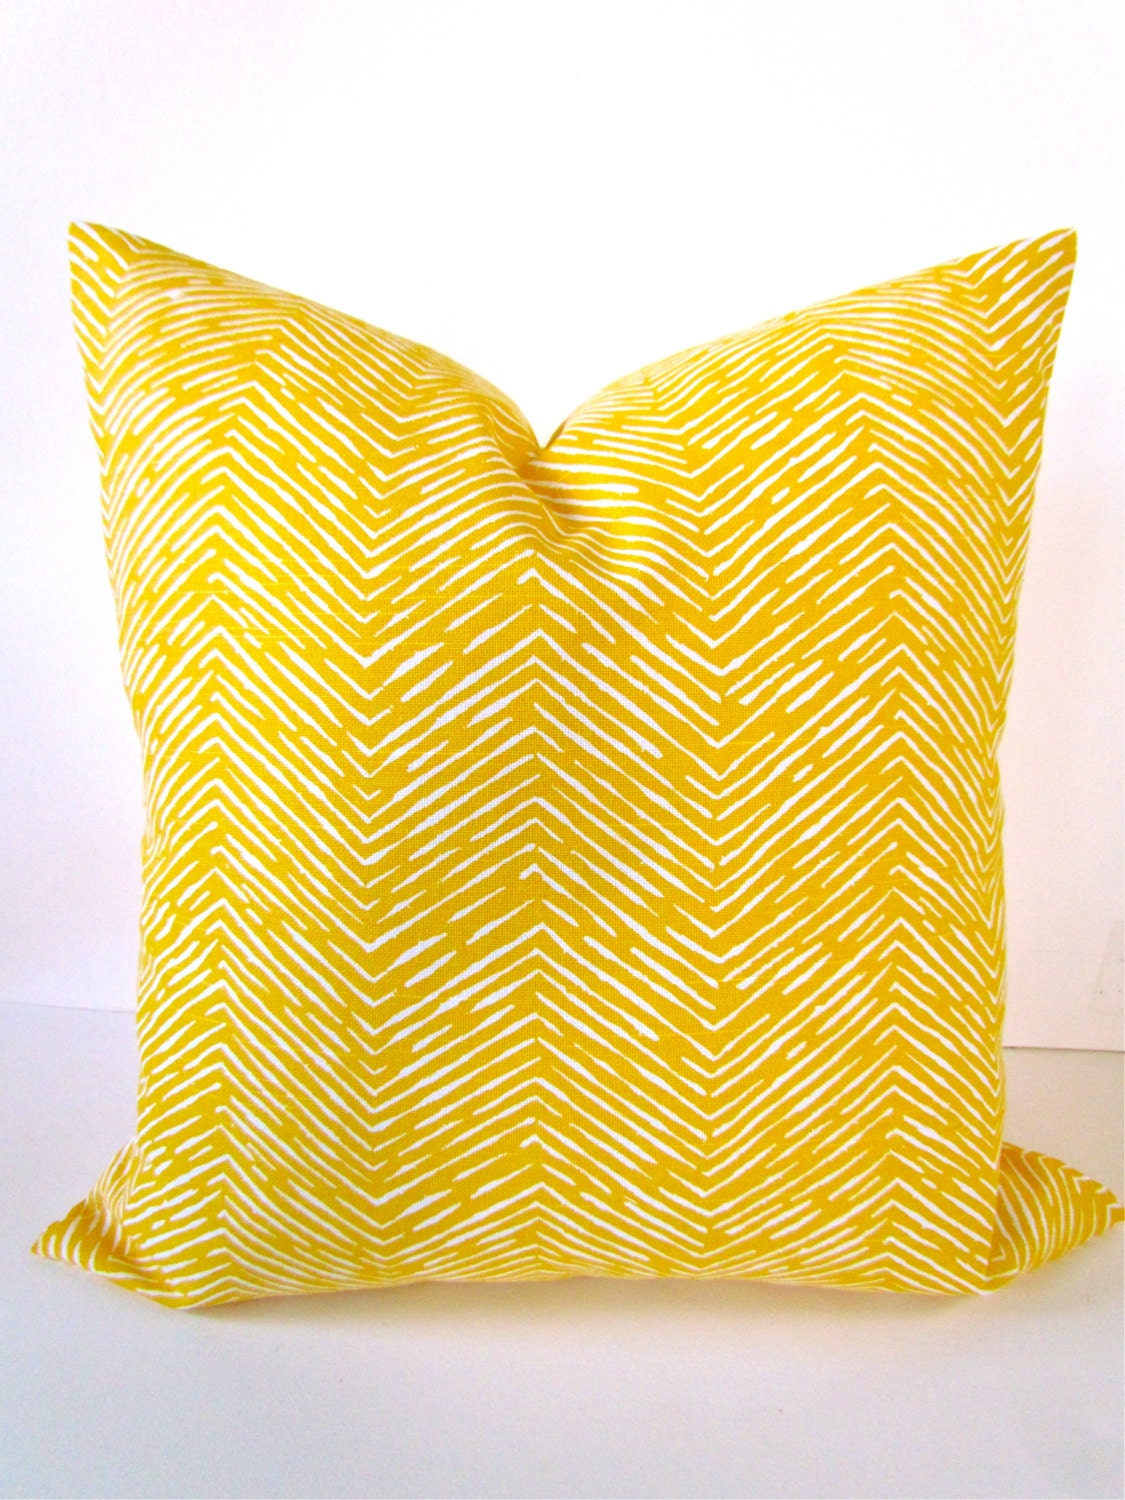 YELLOW PILLOW Throw Pillow Cover YELLOW Decorative Throw